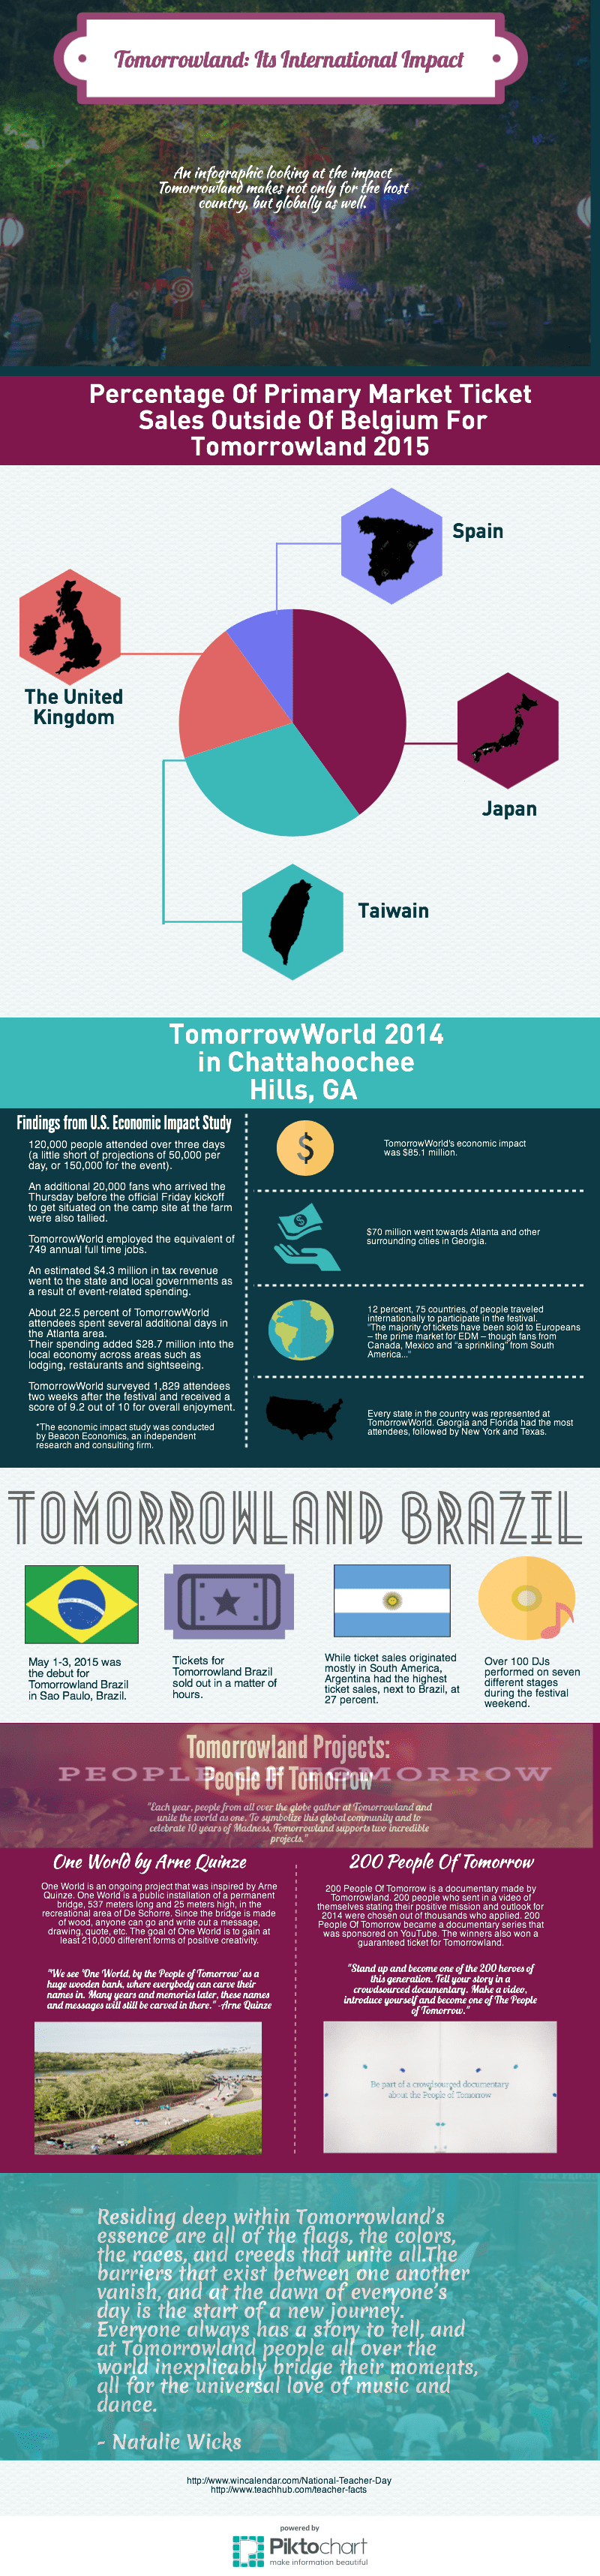 Tomorrowland Its International Impact Infographic